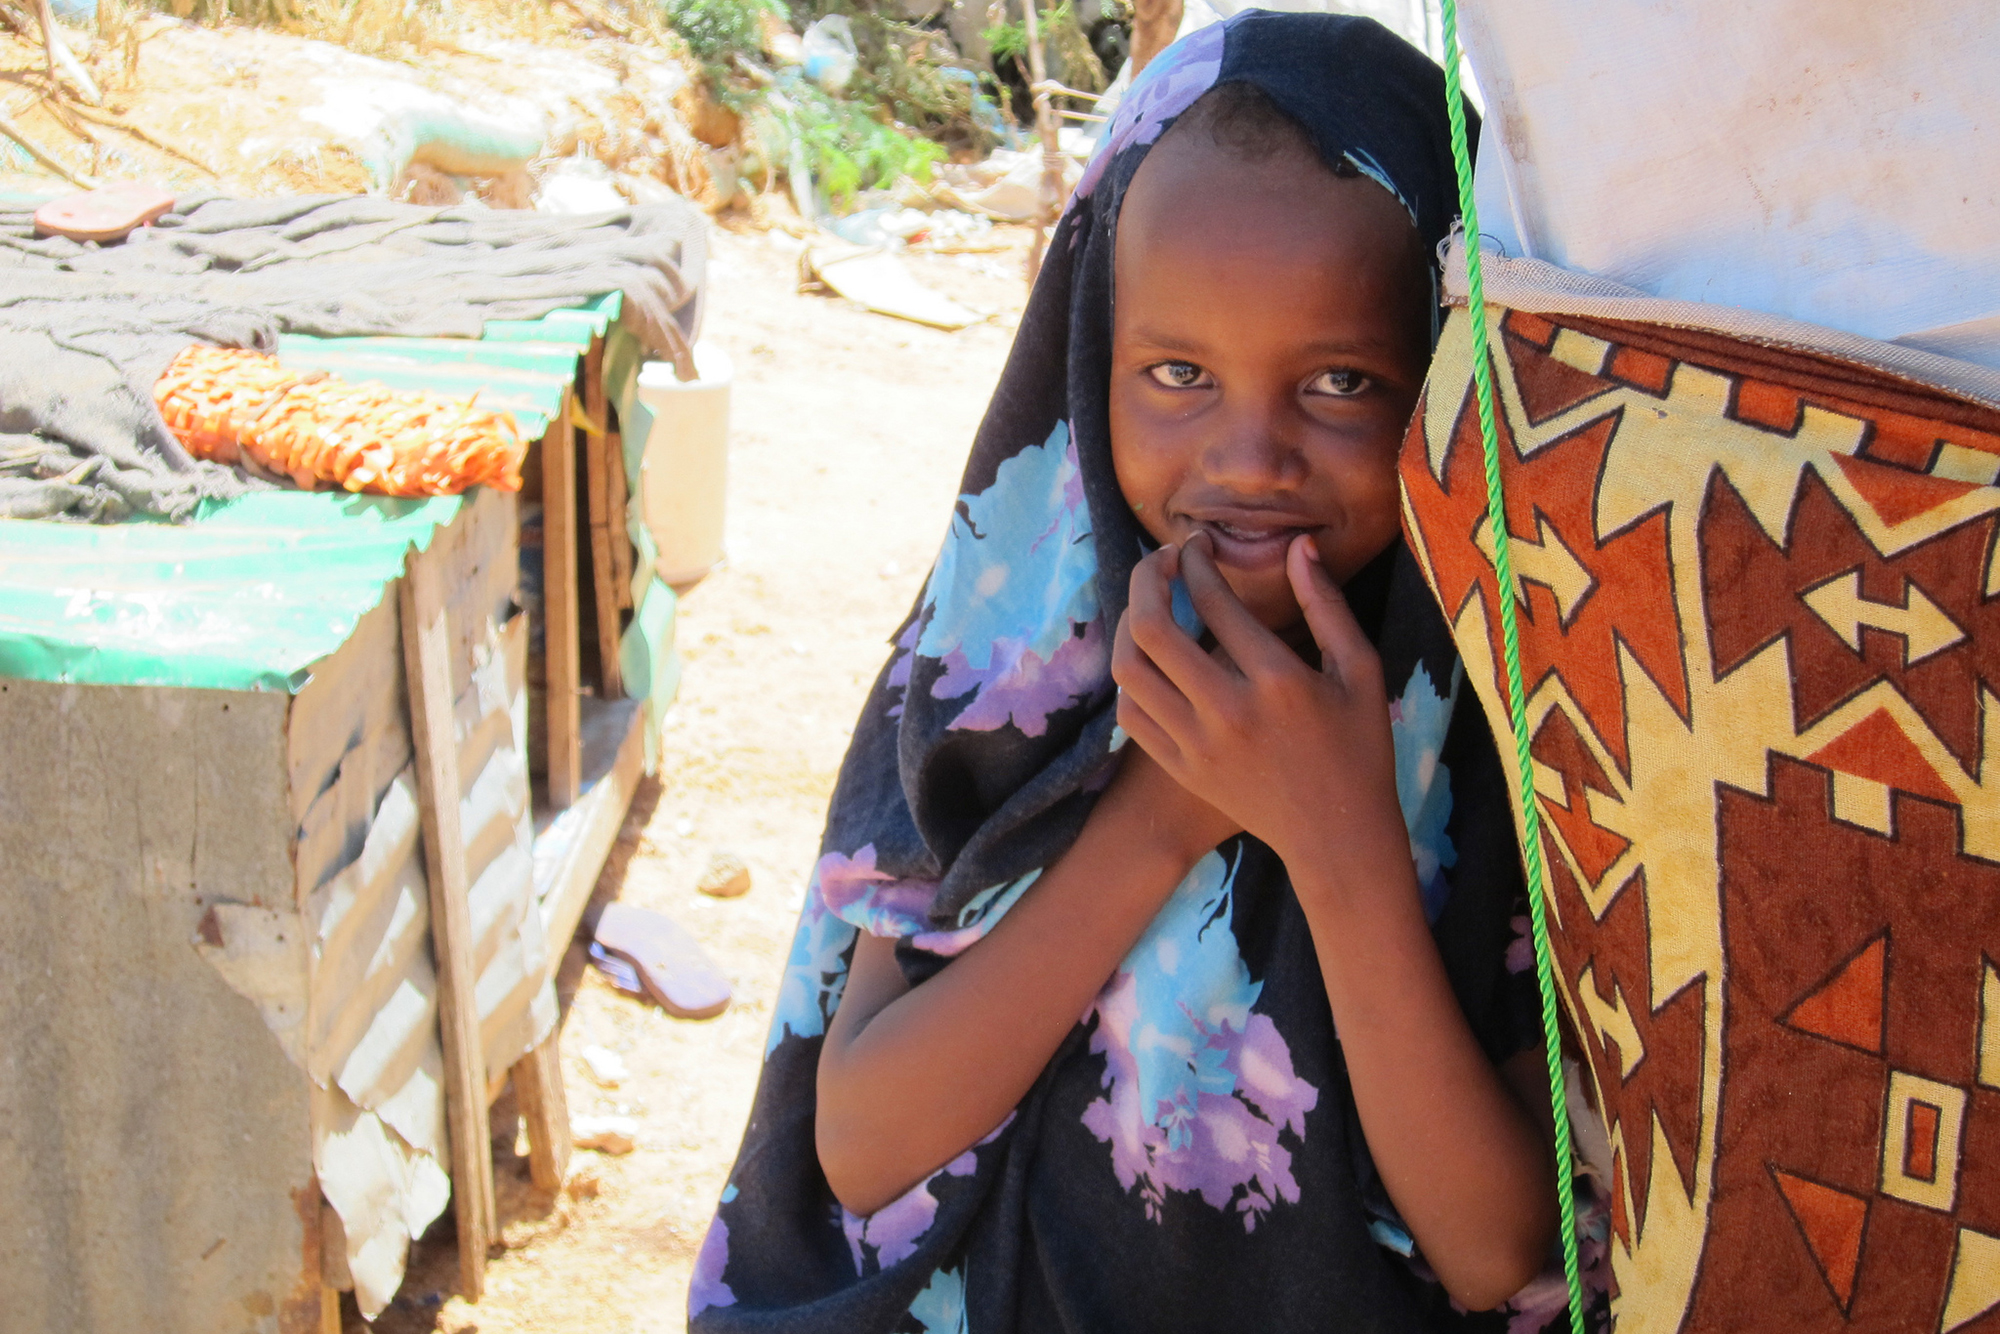 A little girl in Zone K IDP camp